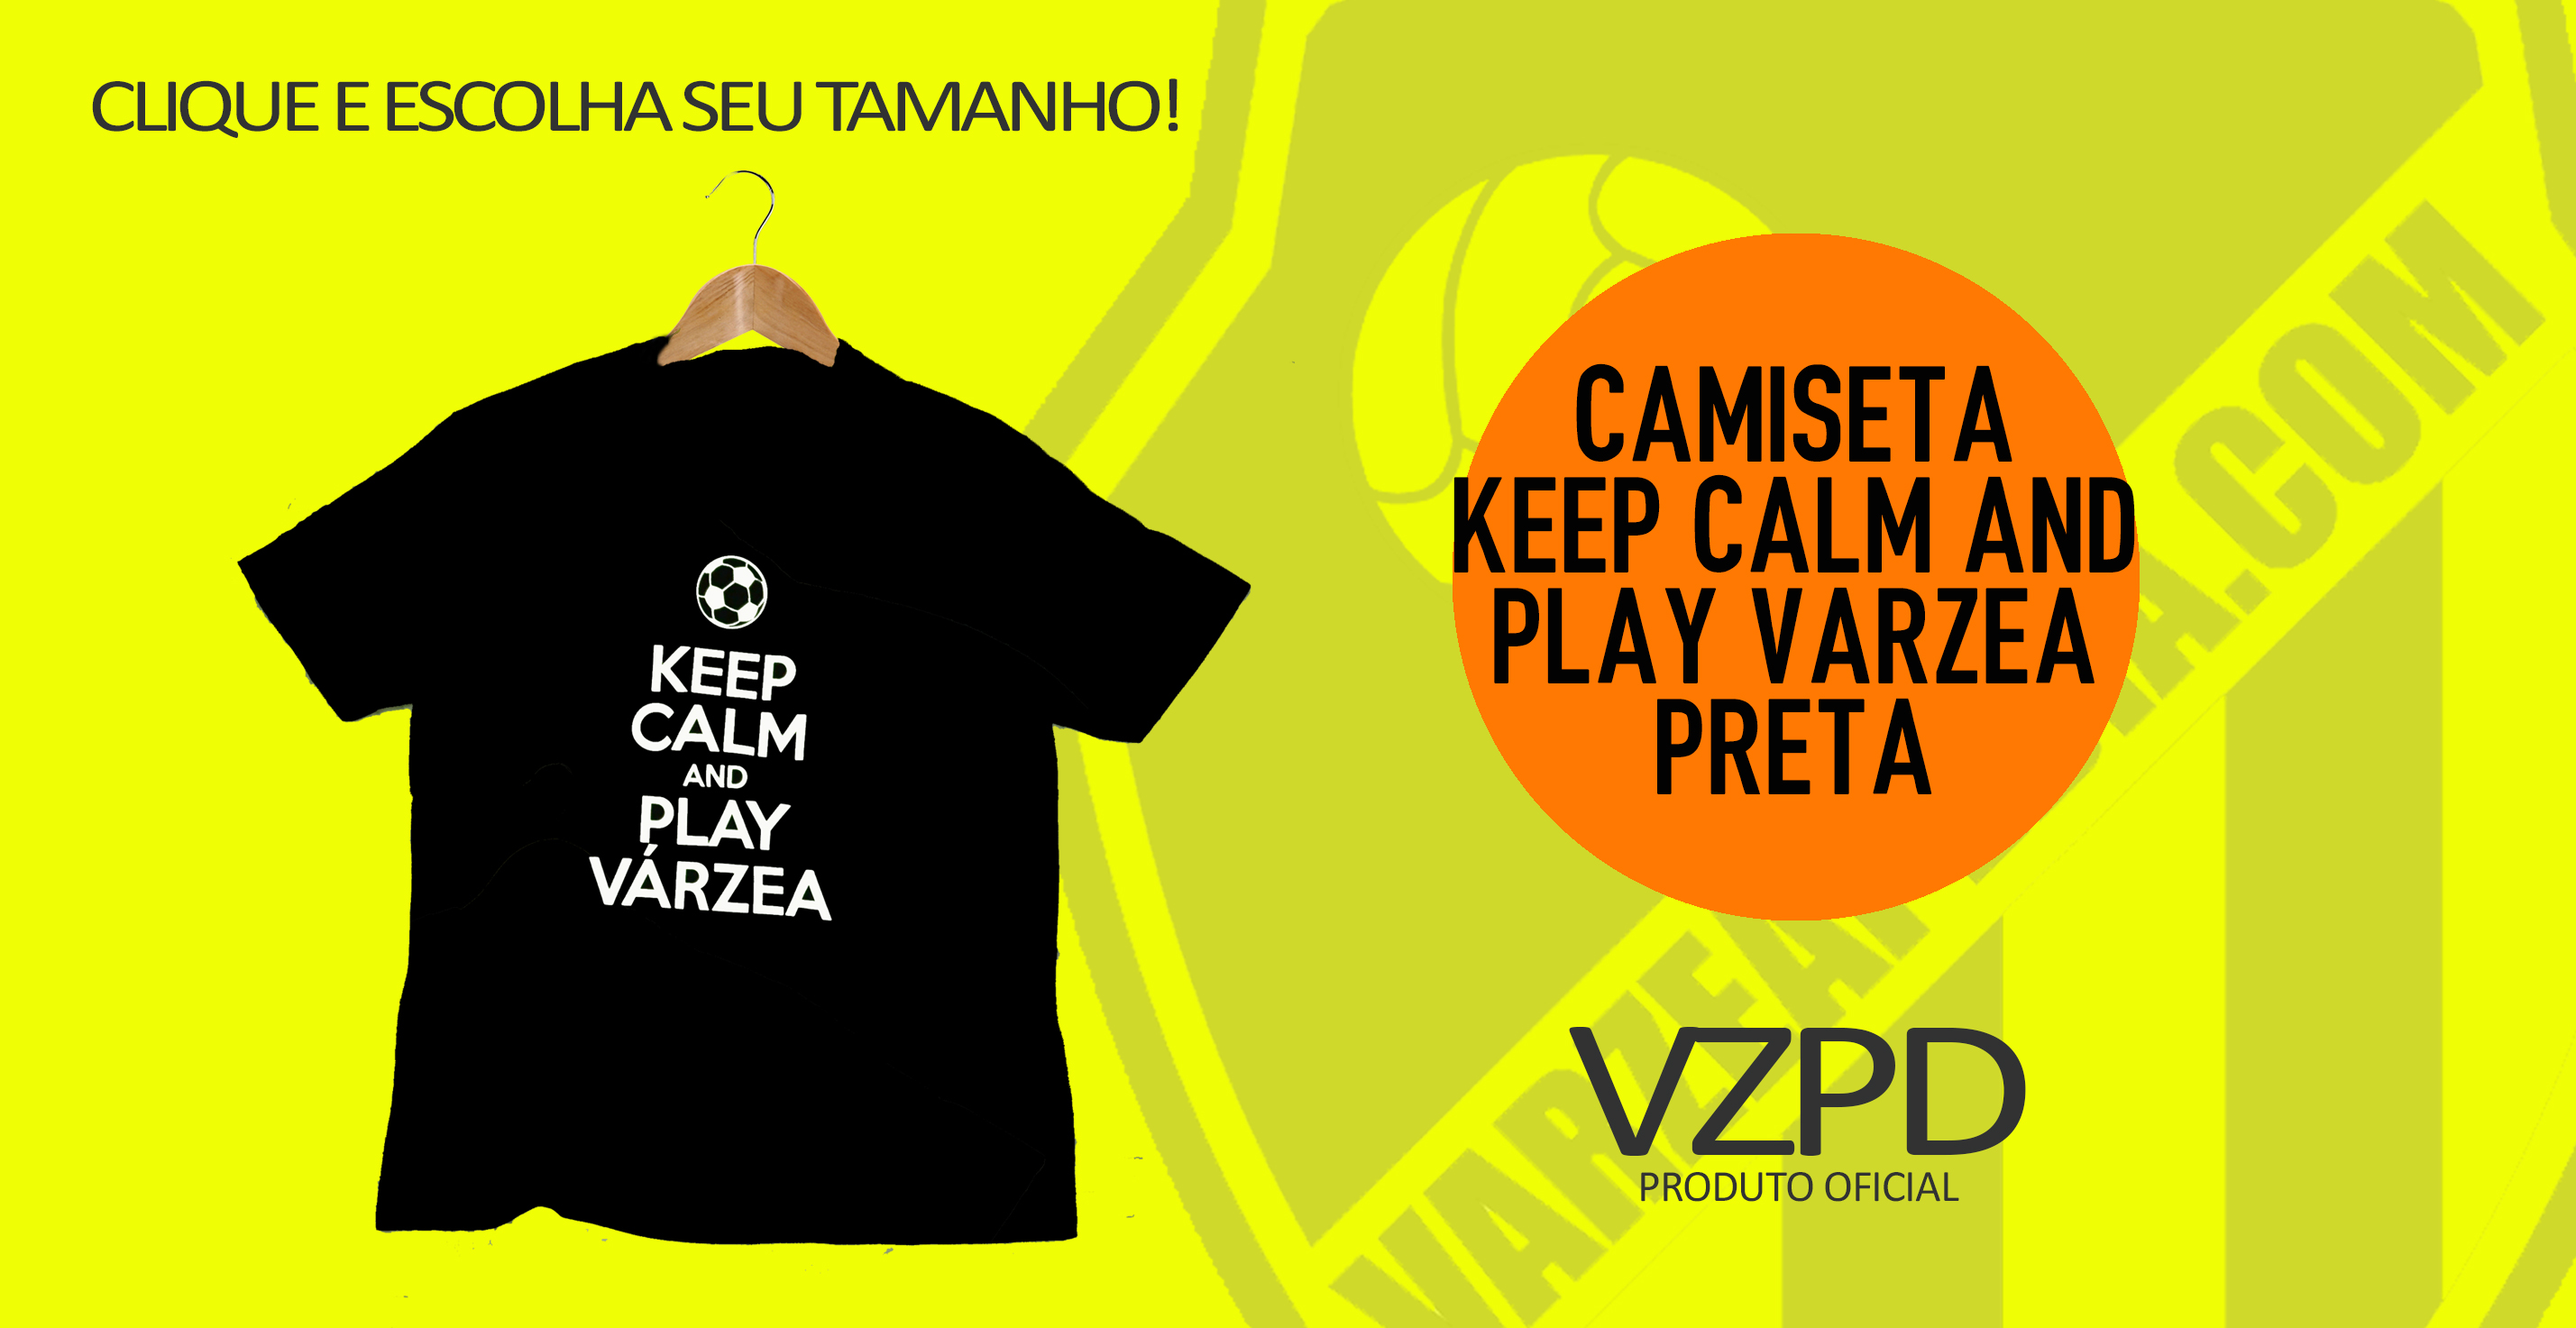 Camiseta keep calm and play varzea preta